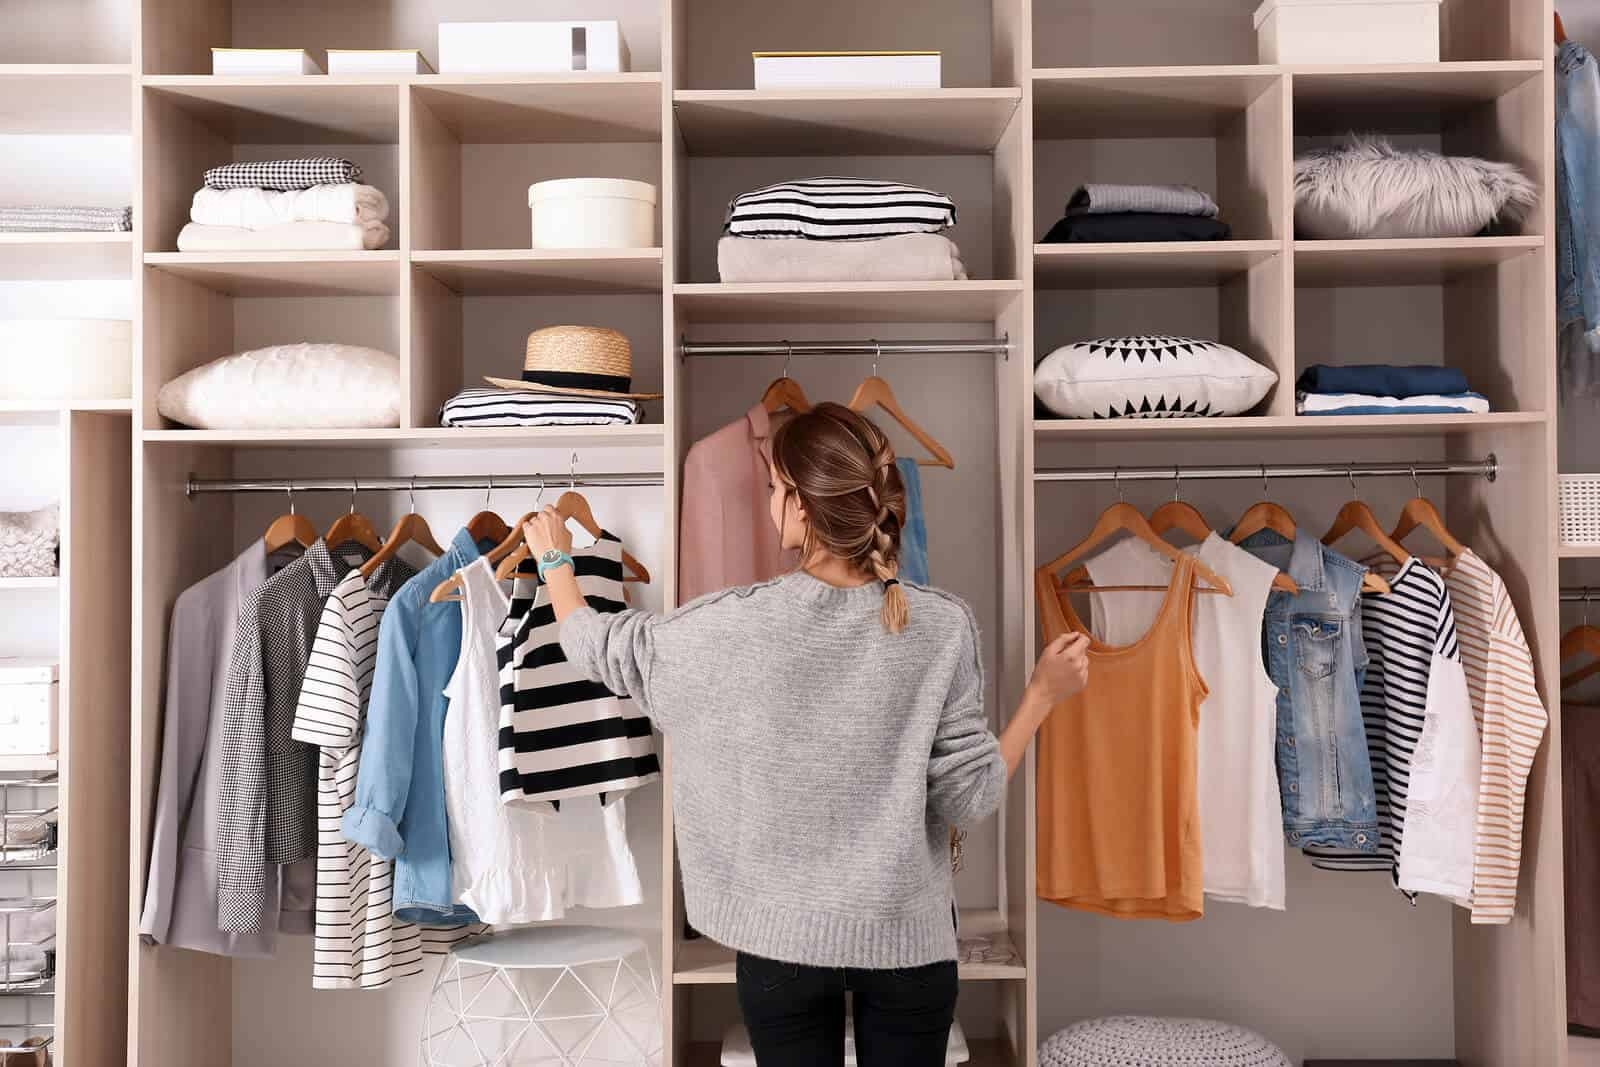 reach-in closet design trends